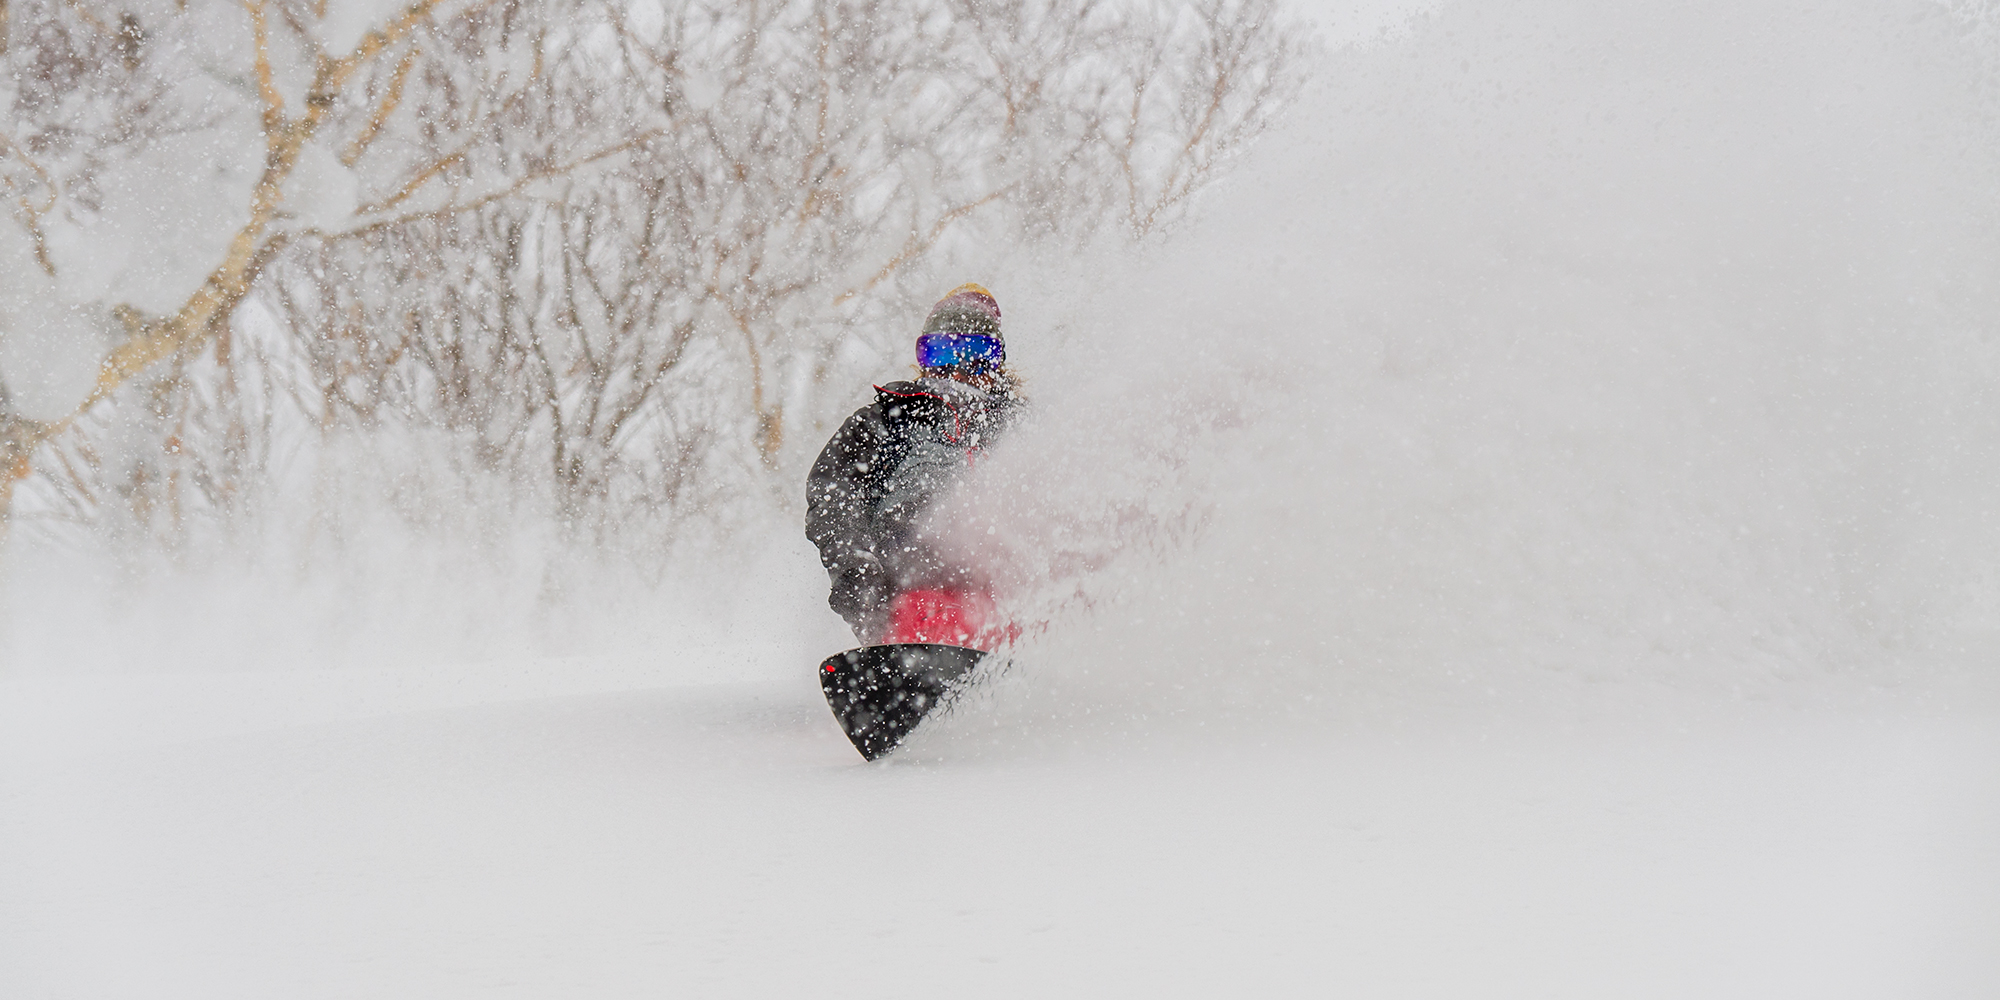 Taking snowsurfing to the world